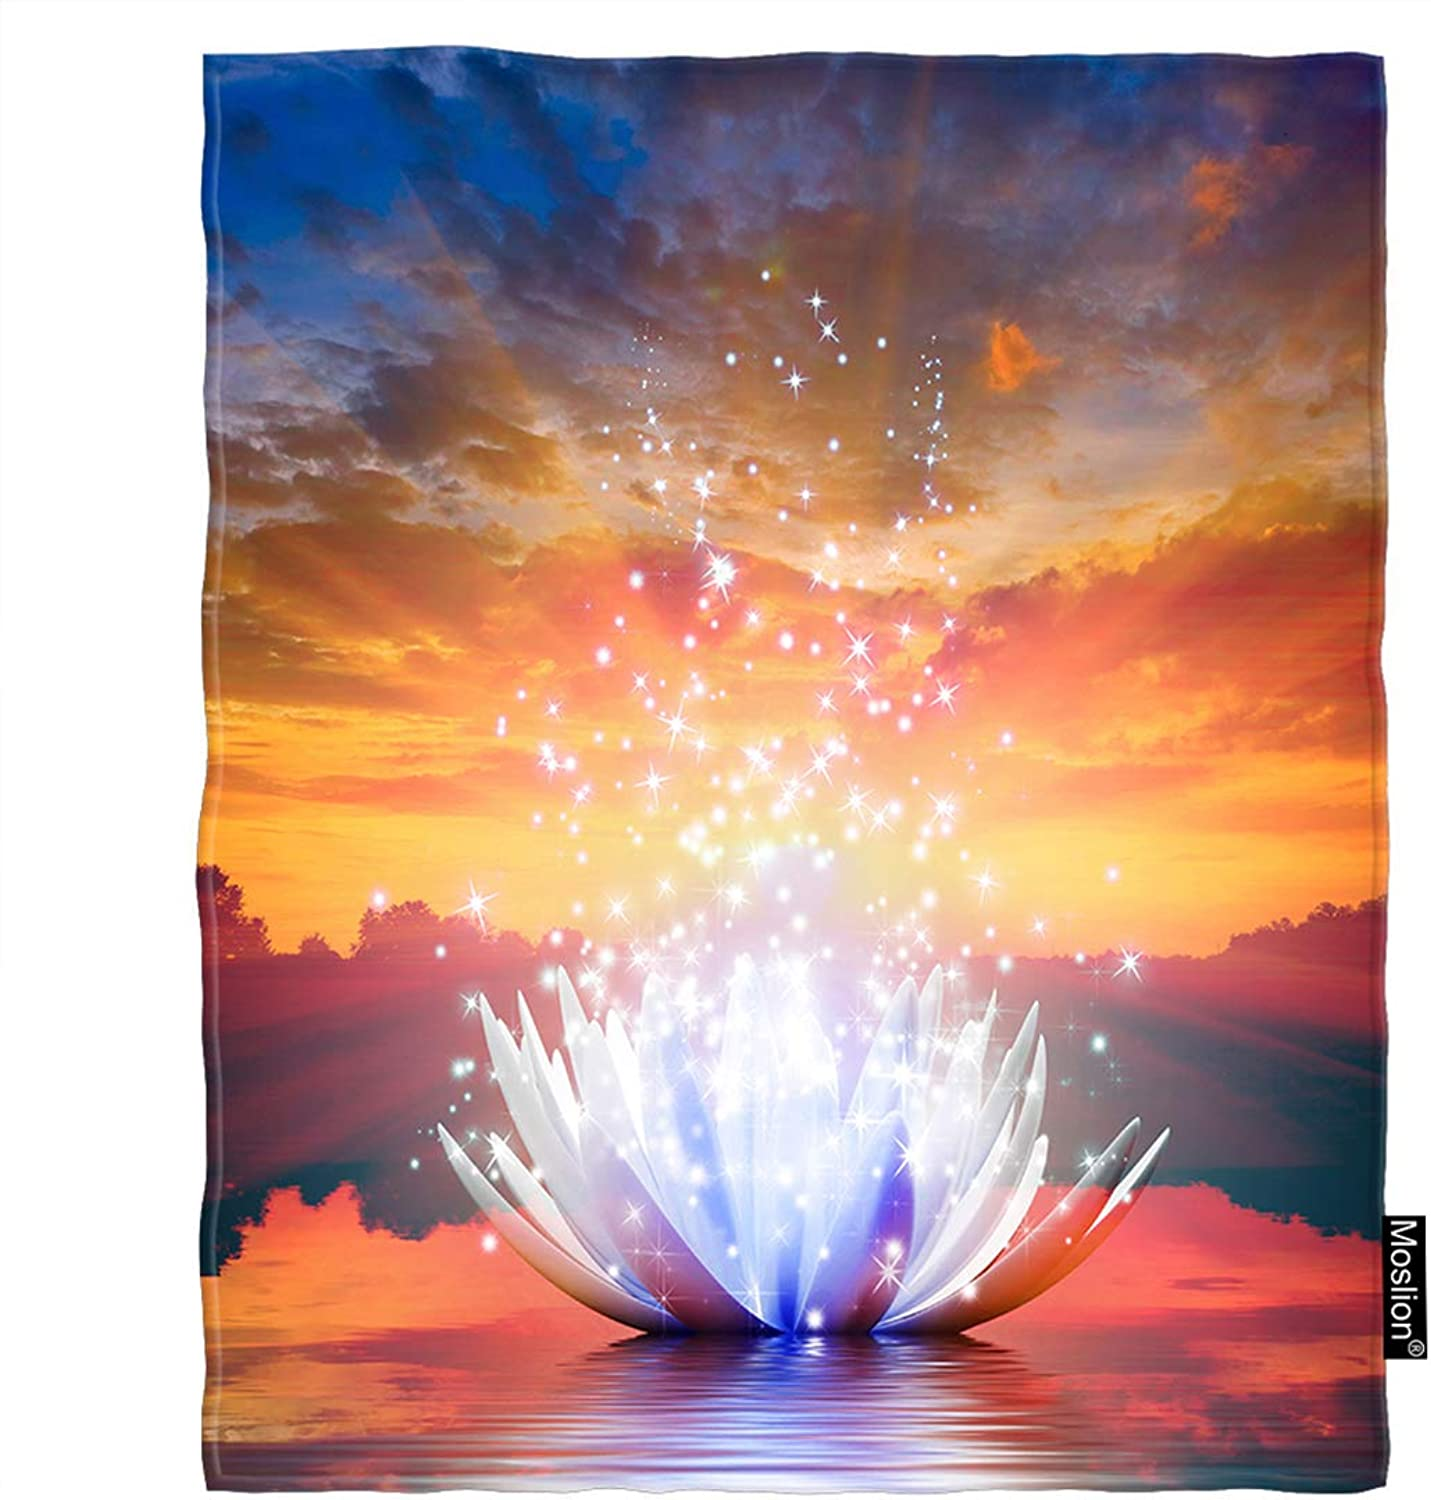 Moslion Lotus Blanket Star Light Lotus Flower on The Lake at Sunset with Trees Cloudy Sky Throw Blanket Flannel Home Decorative Soft Cozy Blankets 60x80 Inch for Adults Kids Sofa White orange